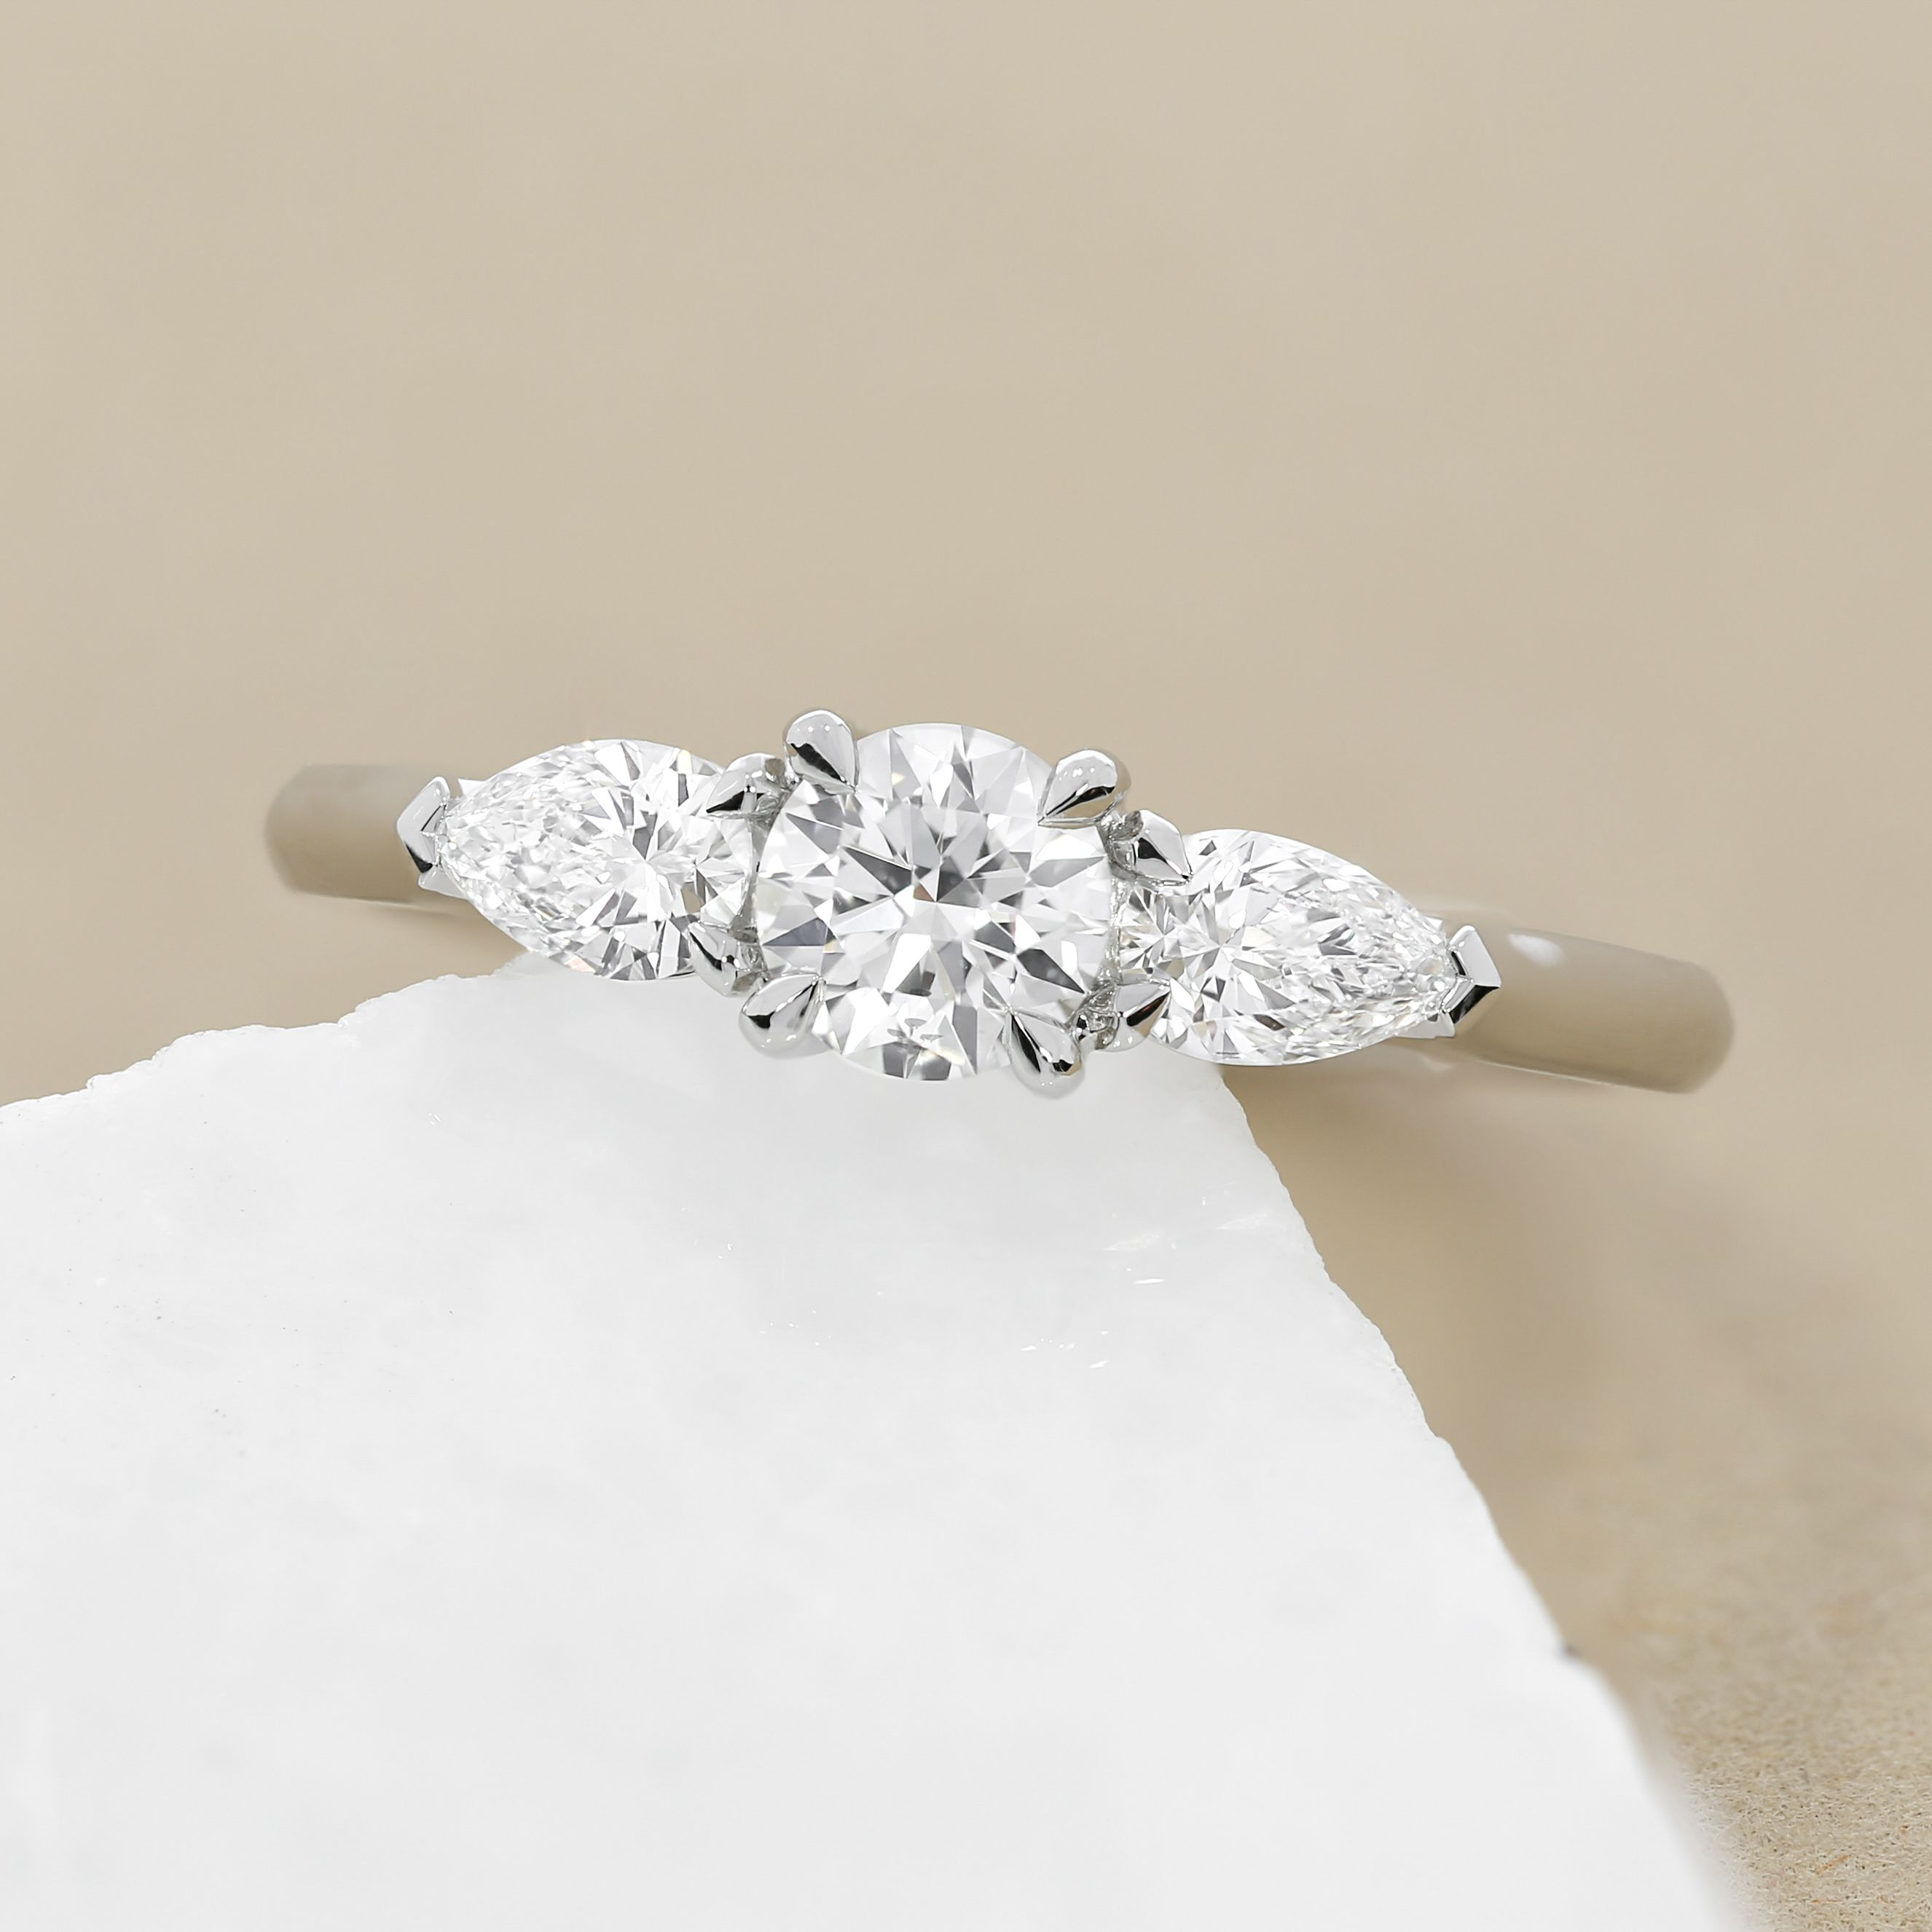 This three stone engagement ring features a round